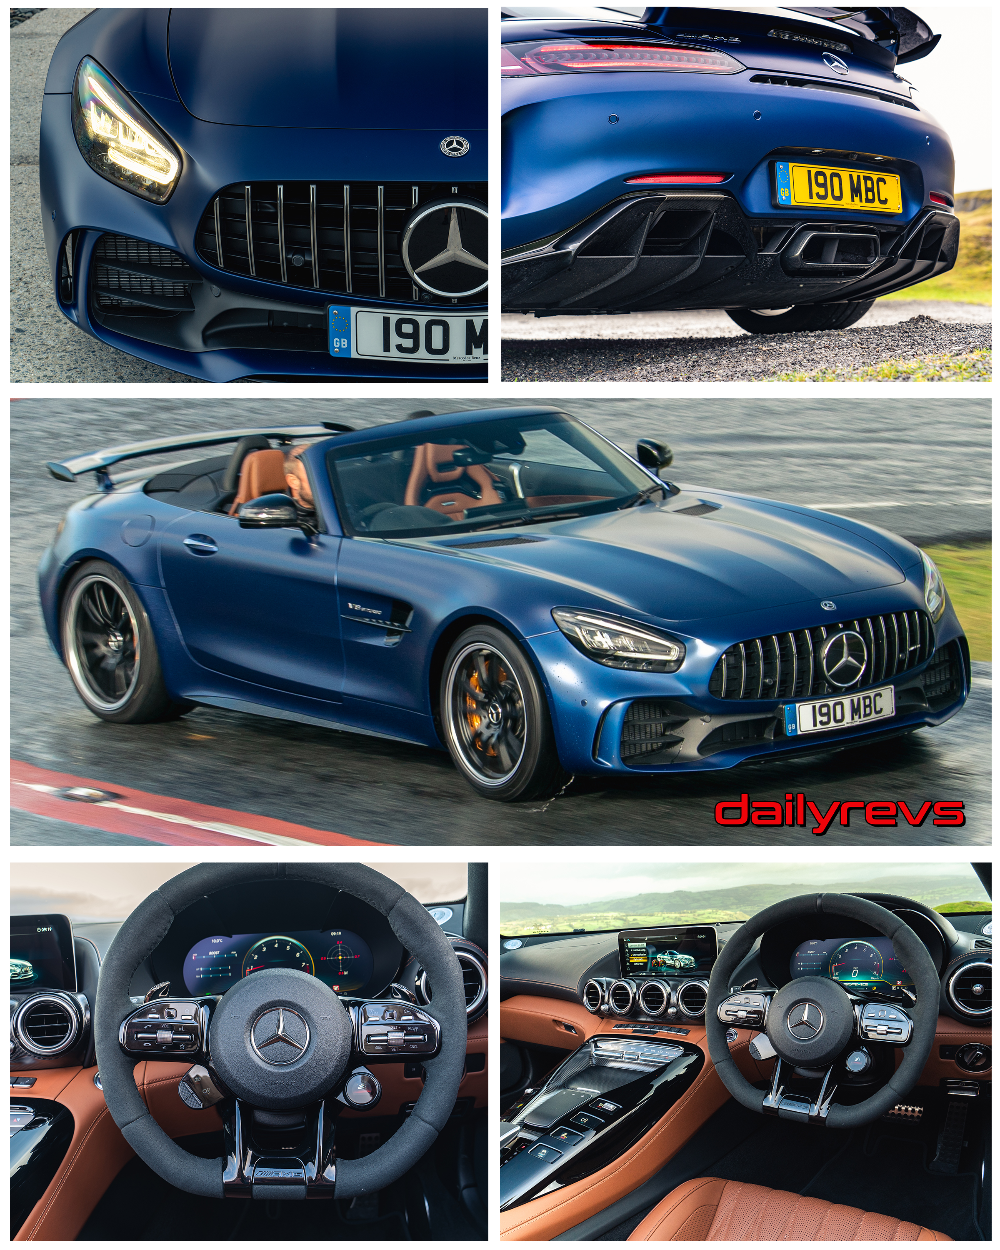 2020 Mercedes Benz A35 Amg Sedan Uk In 2020 With Images: 2020 Mercedes-Benz AMG GT R Roadster [UK]